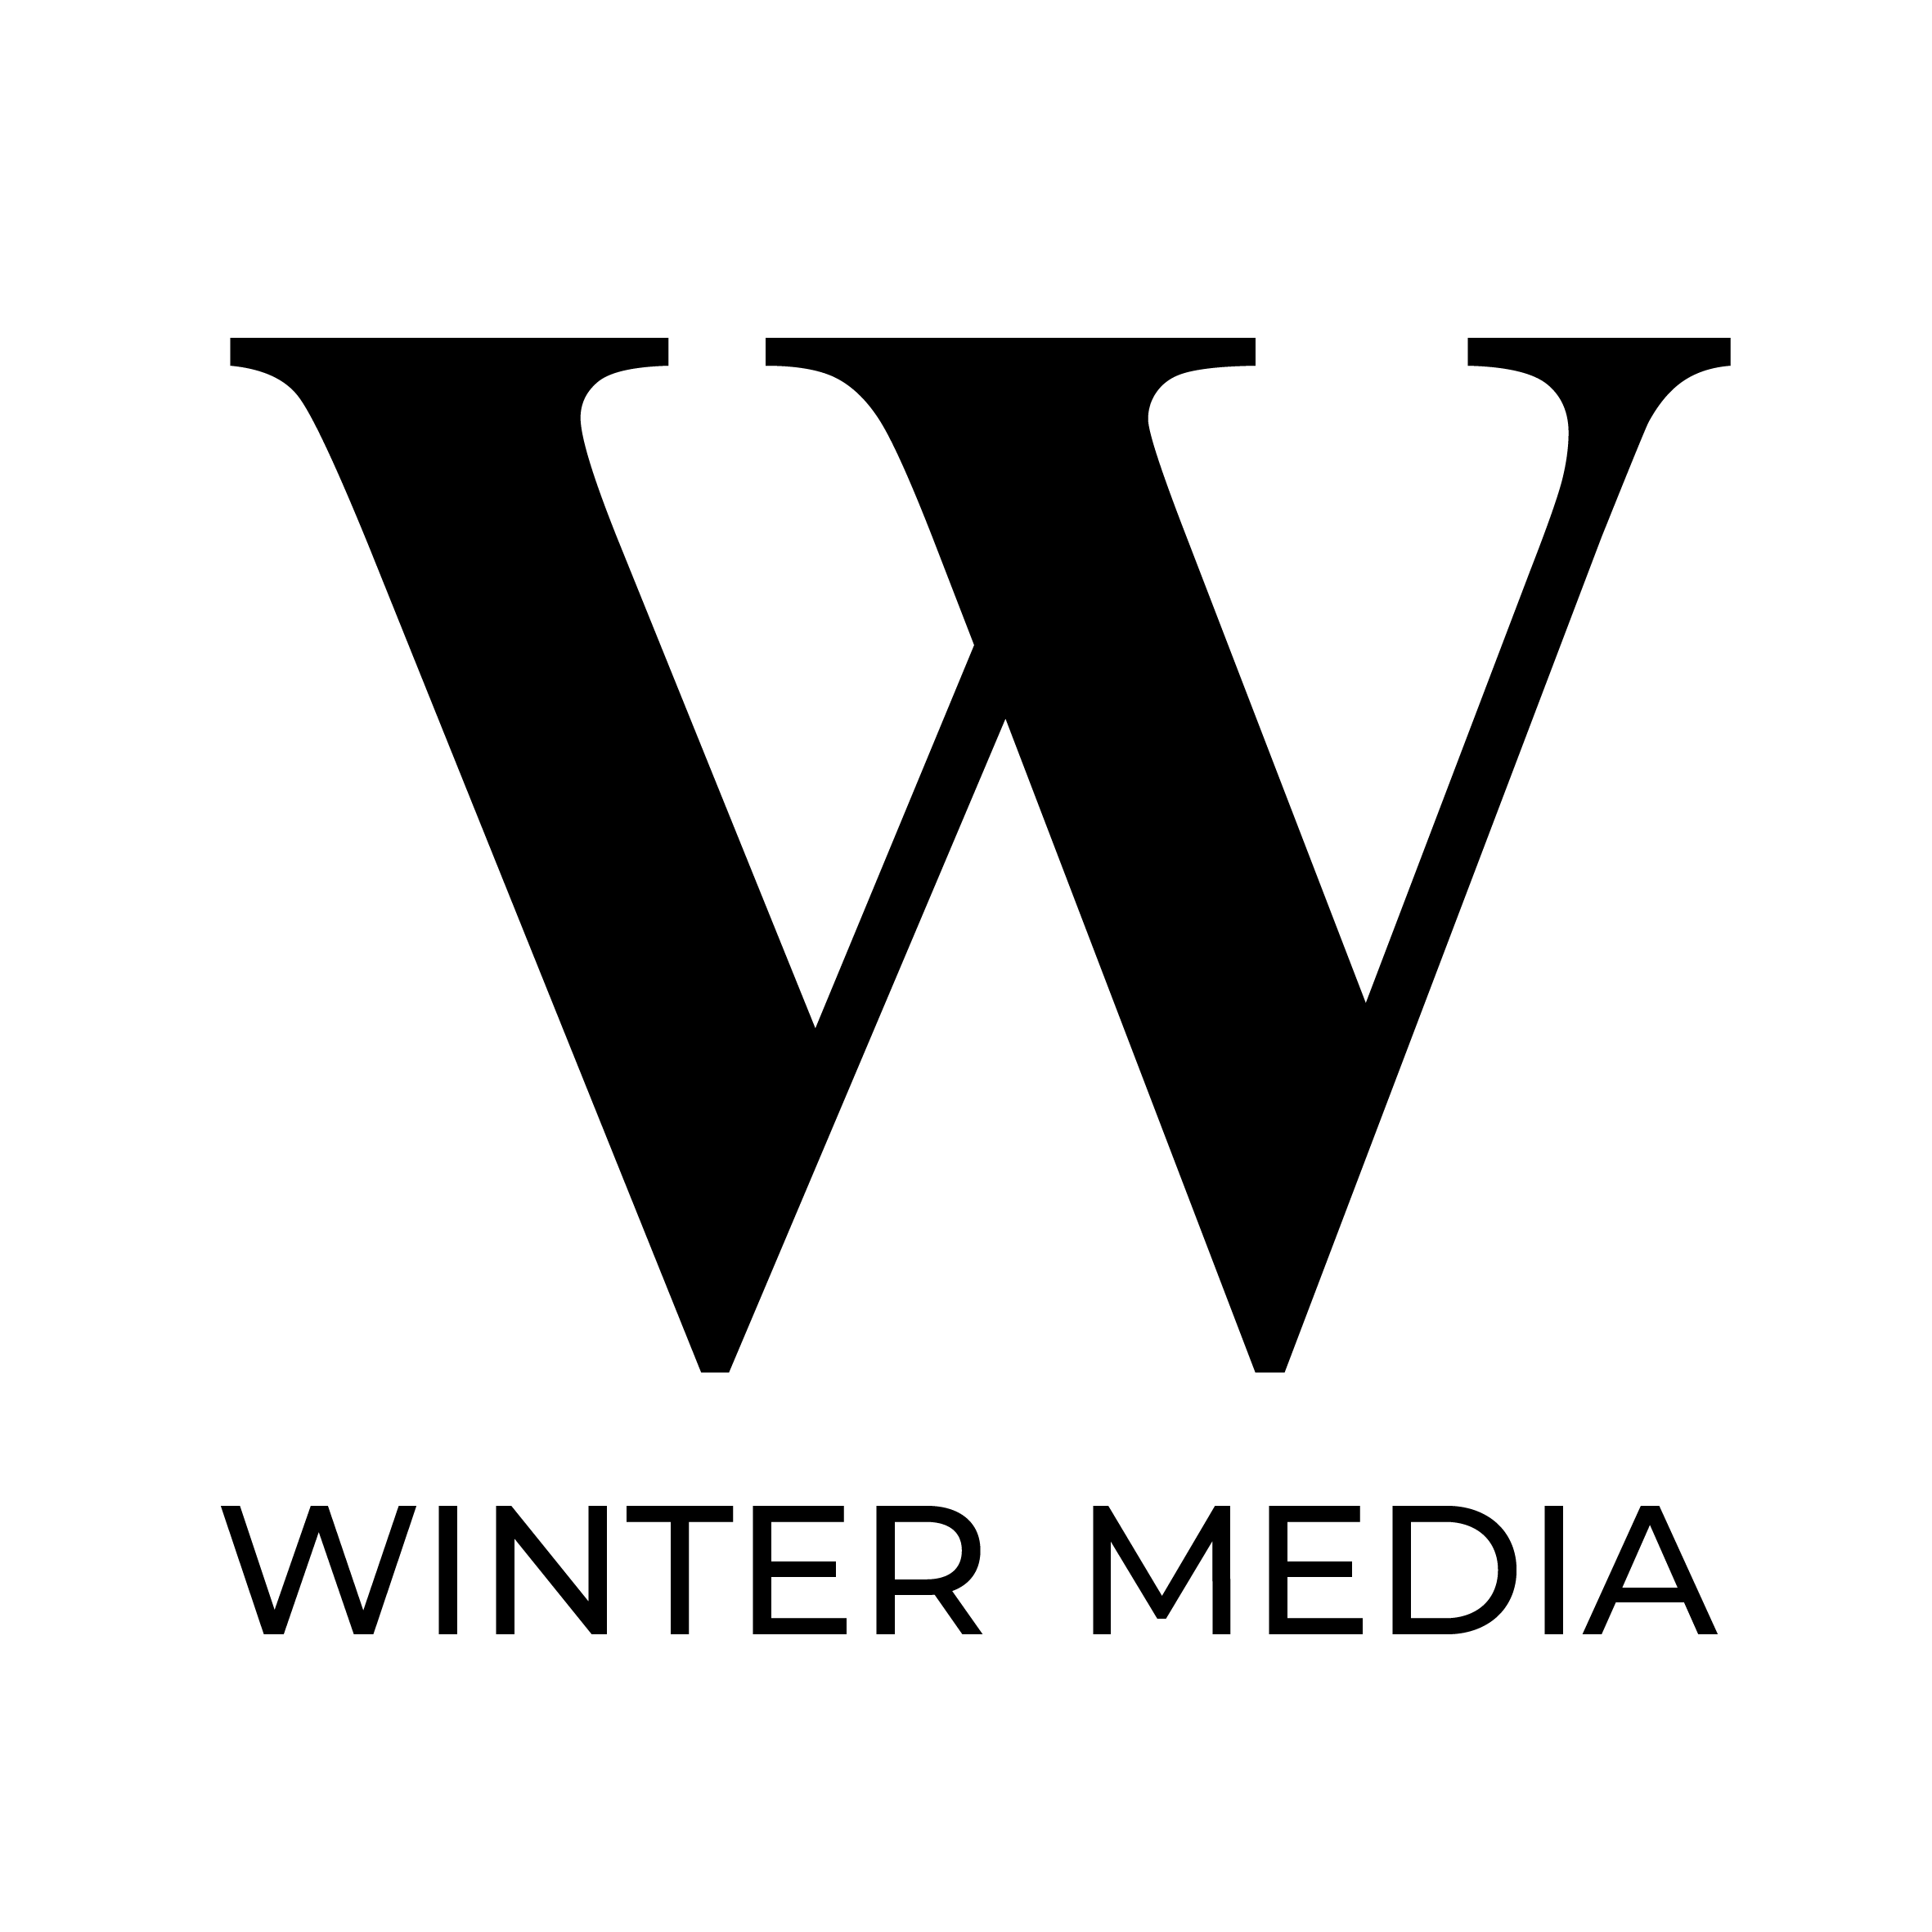 WINTER MEDIA GmbH